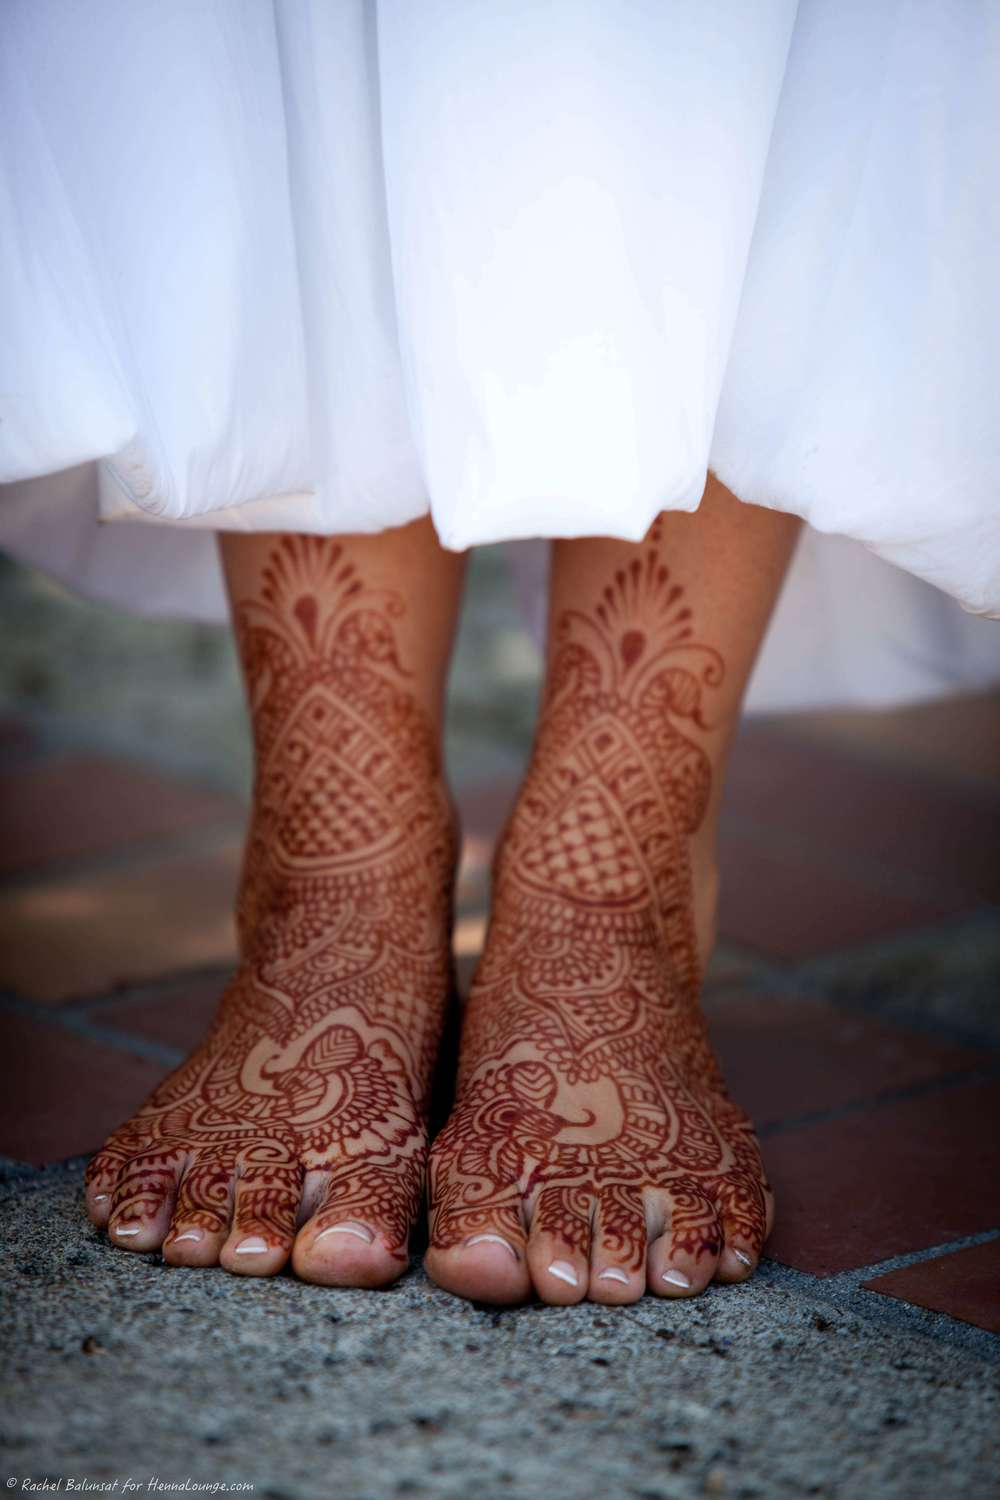 Jimmy Choo has nothing on these tootsies!! Photo by Rachel Balunsat and henna by http://www.hennalounge.com